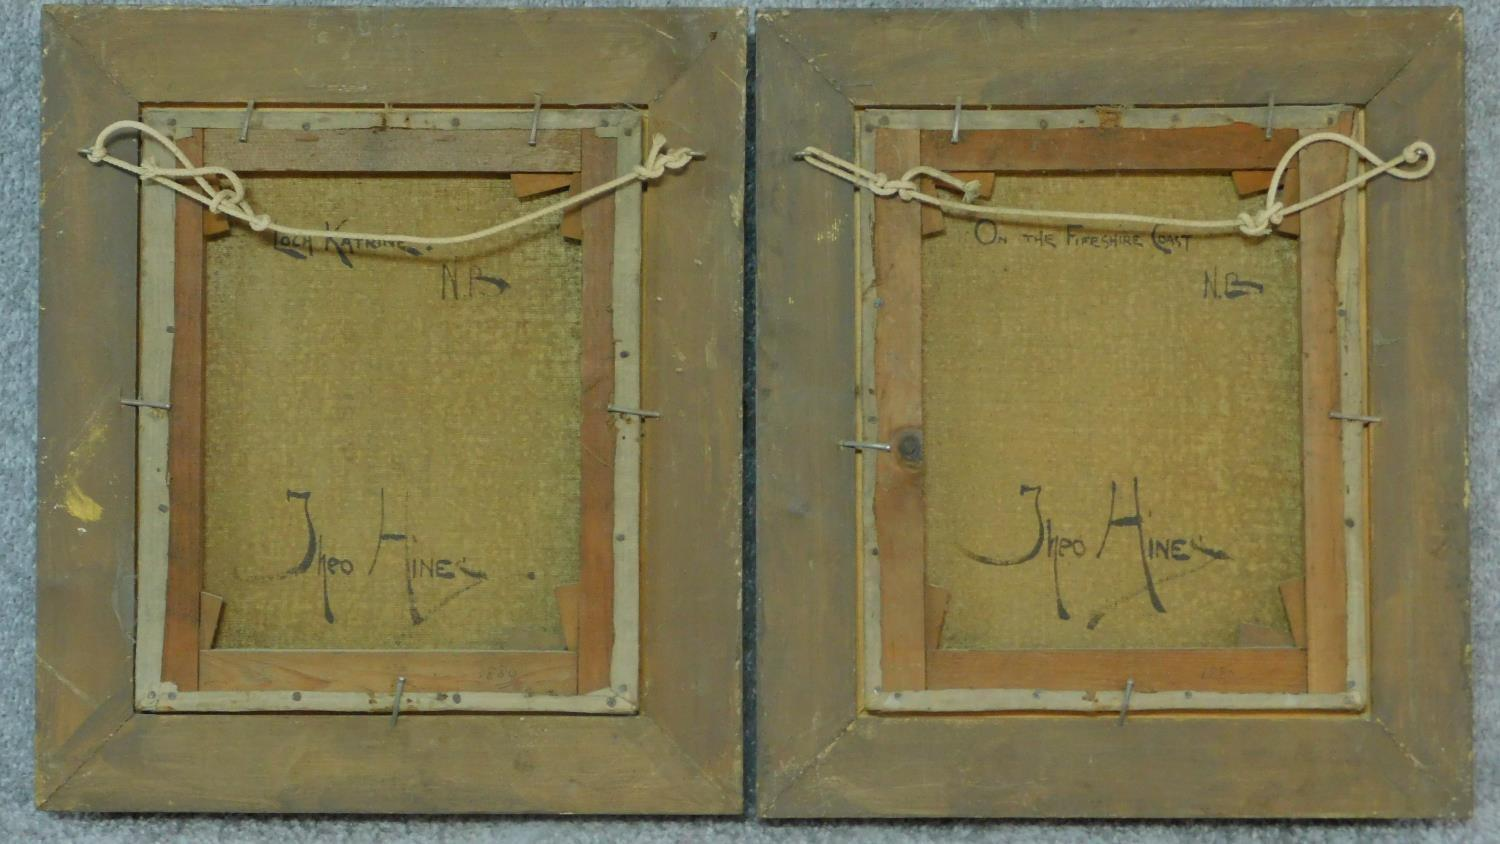 A pair of gilt framed oil paintings on canvas, Scottish landscapes, signed Theo Hines, signature and - Image 6 of 6